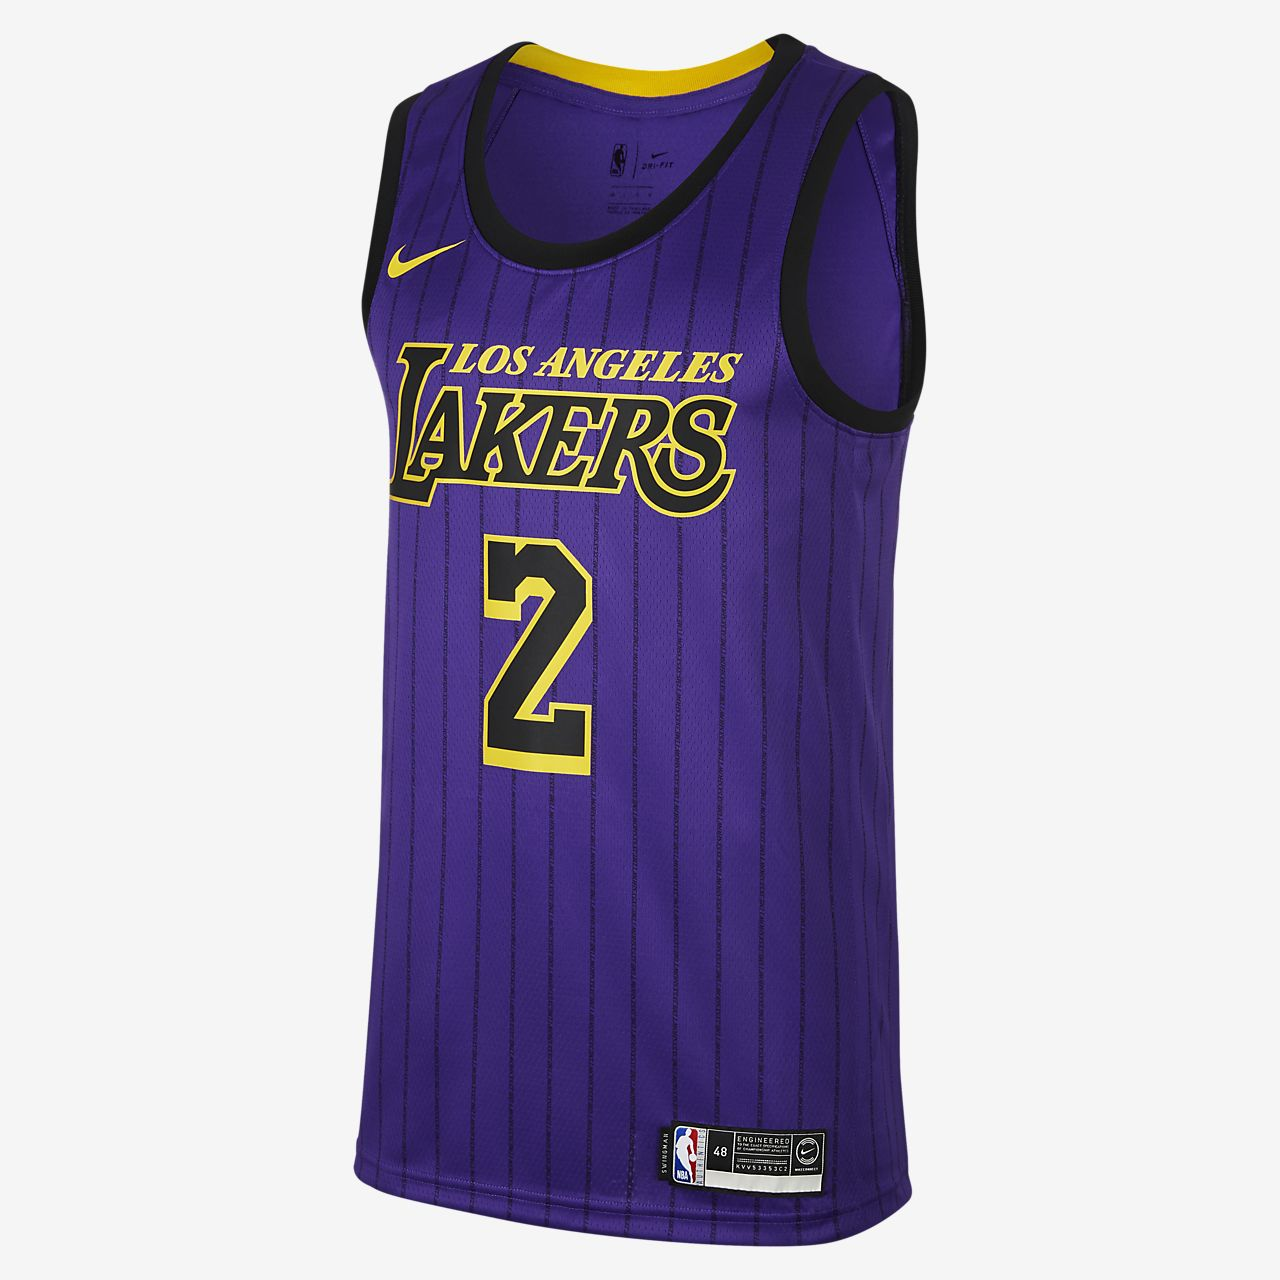 9a0073ff97b Men's Nike NBA Connected Jersey. Lonzo Ball City Edition Swingman (Los  Angeles Lakers)